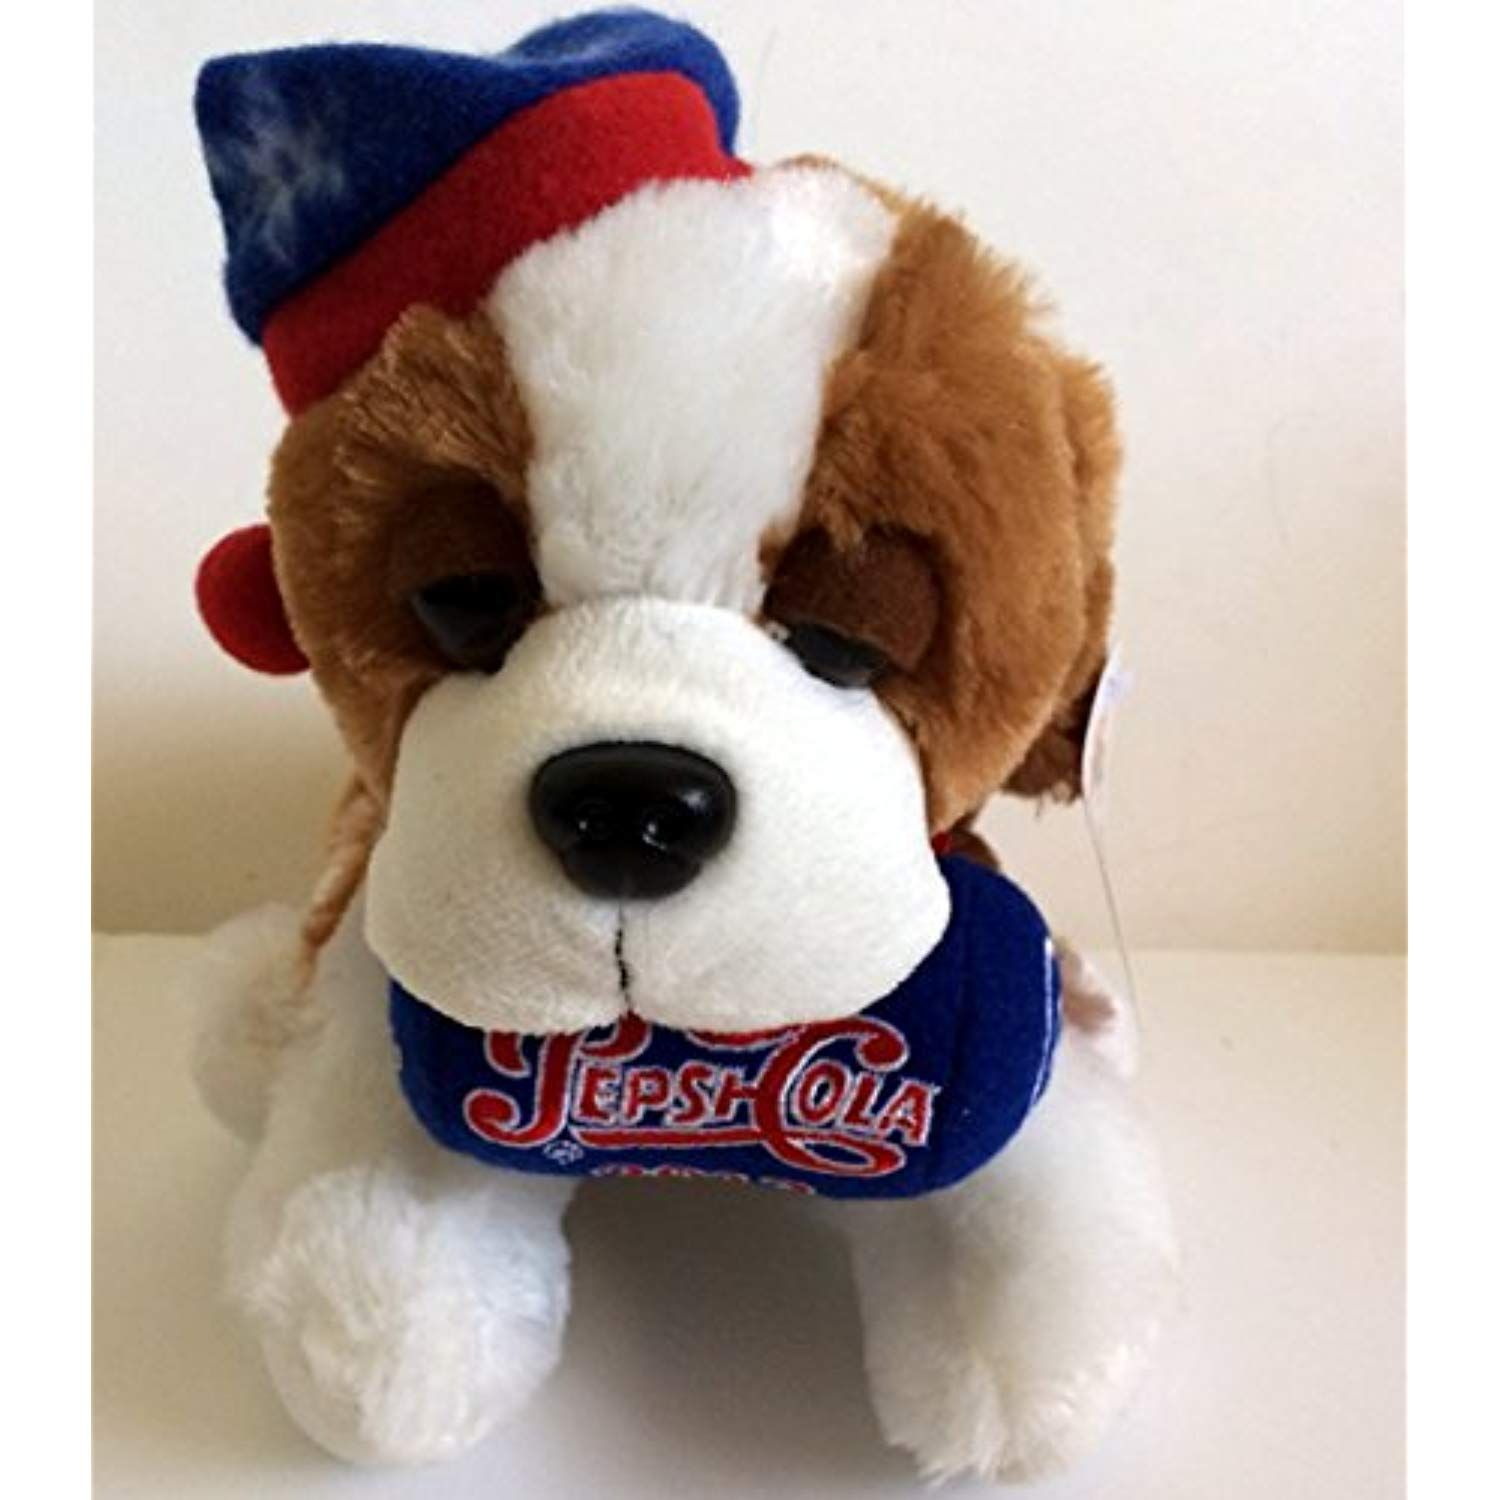 Pepsi Cola Christmas 2013 Plush Dog Check Out The Image By Visiting The Link This Is An Affiliate Link St Plush Dog Teddy Bear Stuffed Animal Pepsi Cola [ 1500 x 1500 Pixel ]